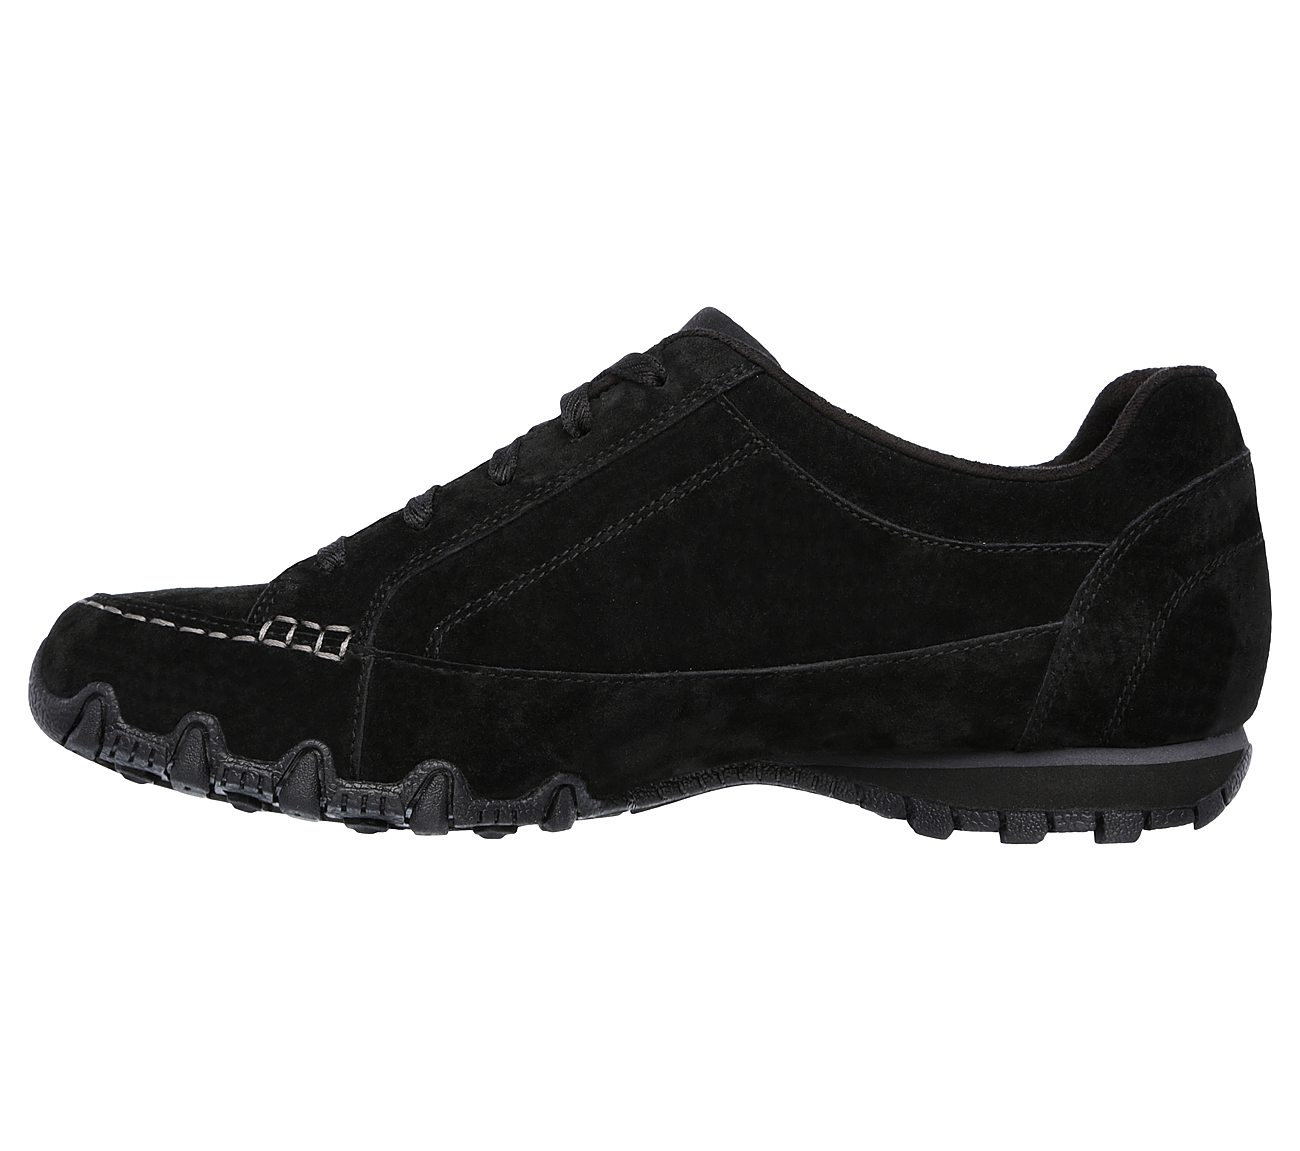 Women's Skechers Curbed 49336 Sneakers cheap sale geniue stockist affordable cheap sale low price fee shipping cheap sale wiki 4jh8q